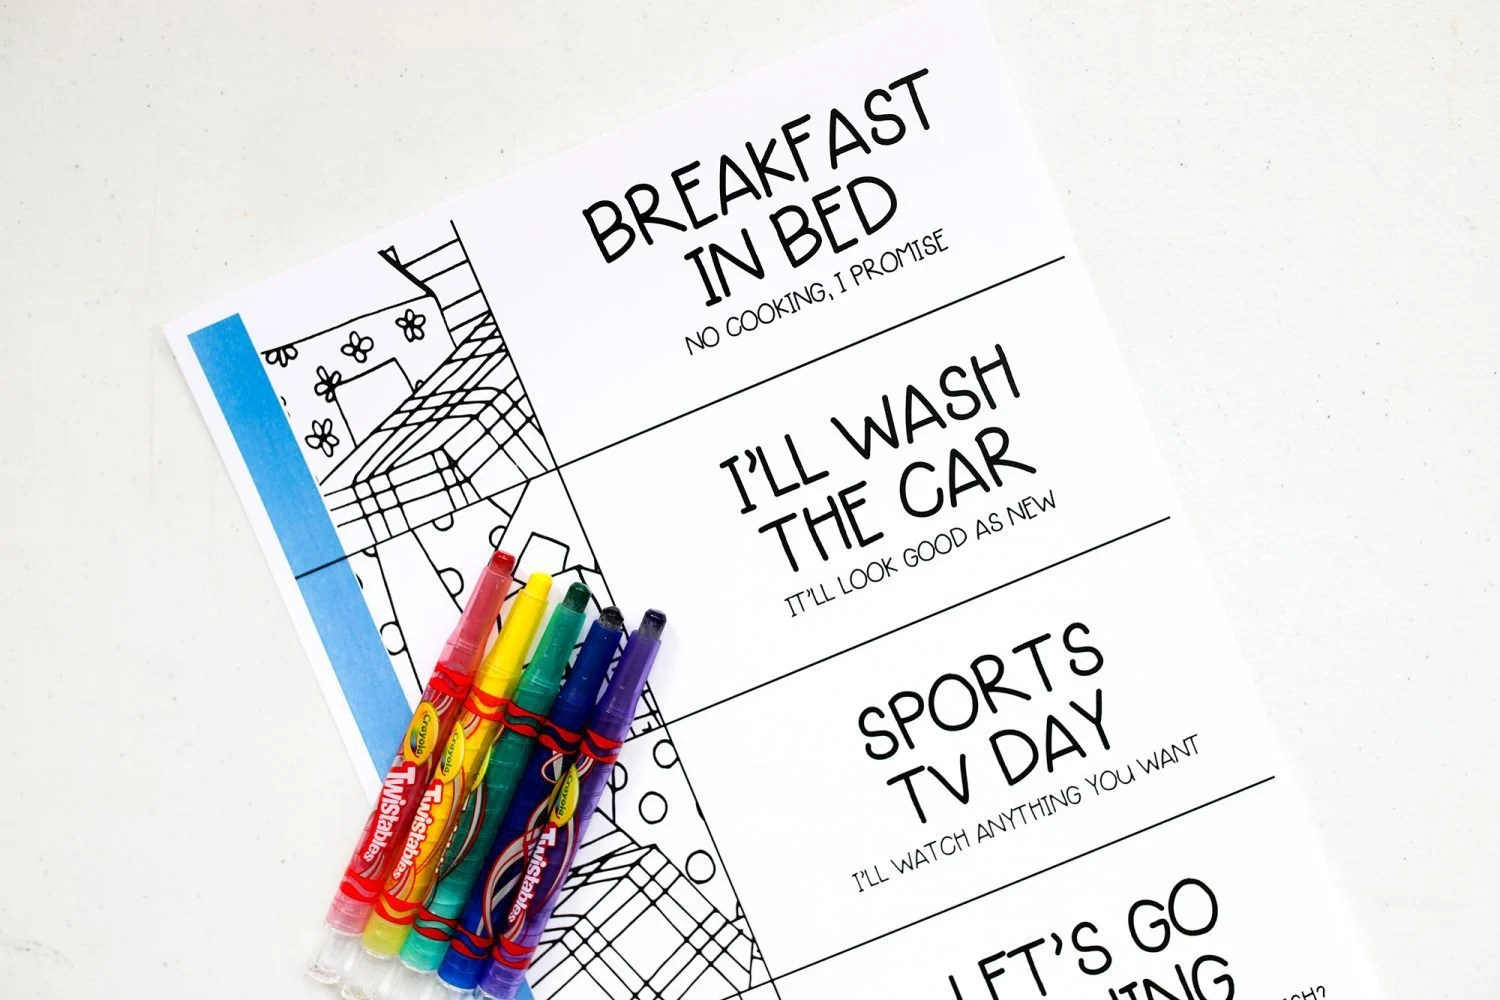 Father's day, father's day coupon book, crafts, craft, crafts for father's day, father's day craft, kids, gift idea, diy, kids craft, crafts for kids, 2019, ideas for father's day, gifts from kids, diy, activity book, free printable, printable, coupon book for father's day